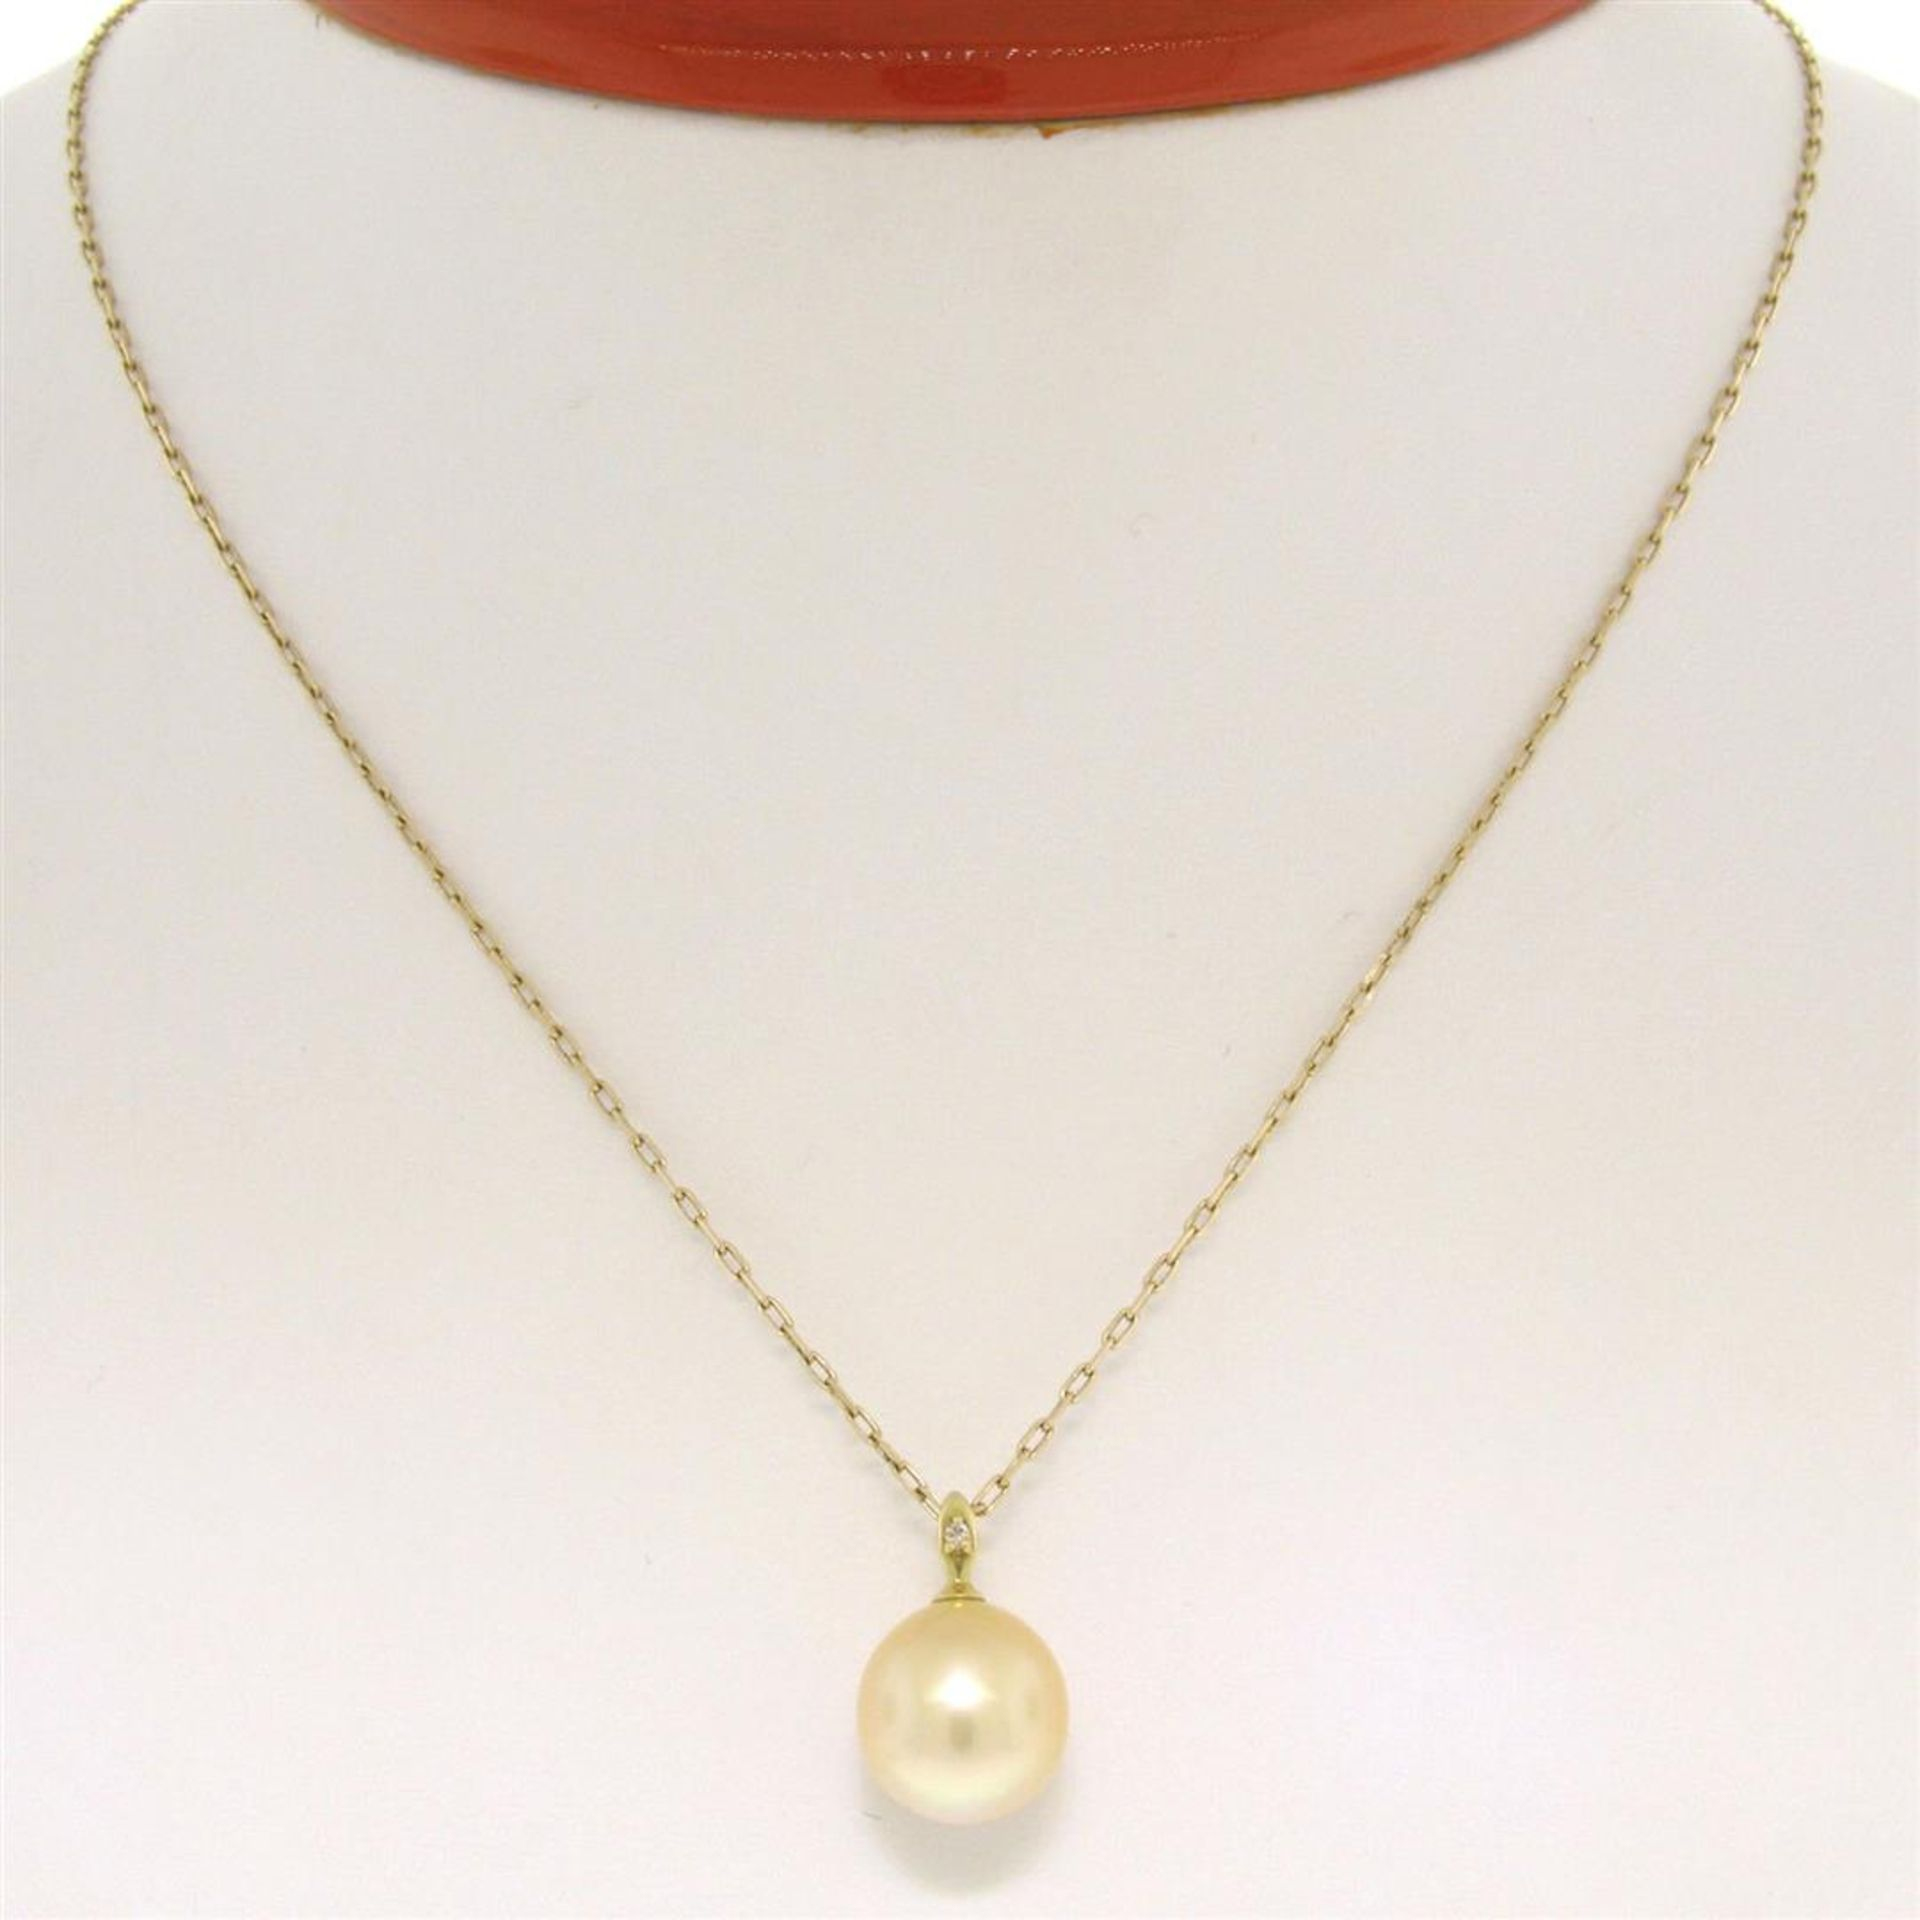 18kt Yellow Gold 10.45mm Pearl and Diamond Solitaire Pendant Necklace